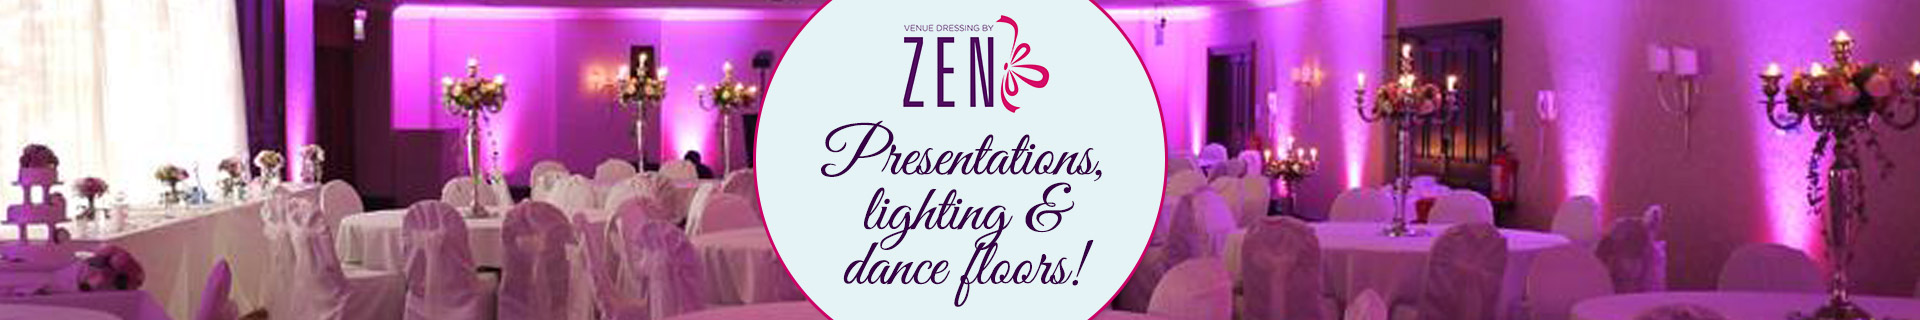 Presentations, lighting & dance floors!